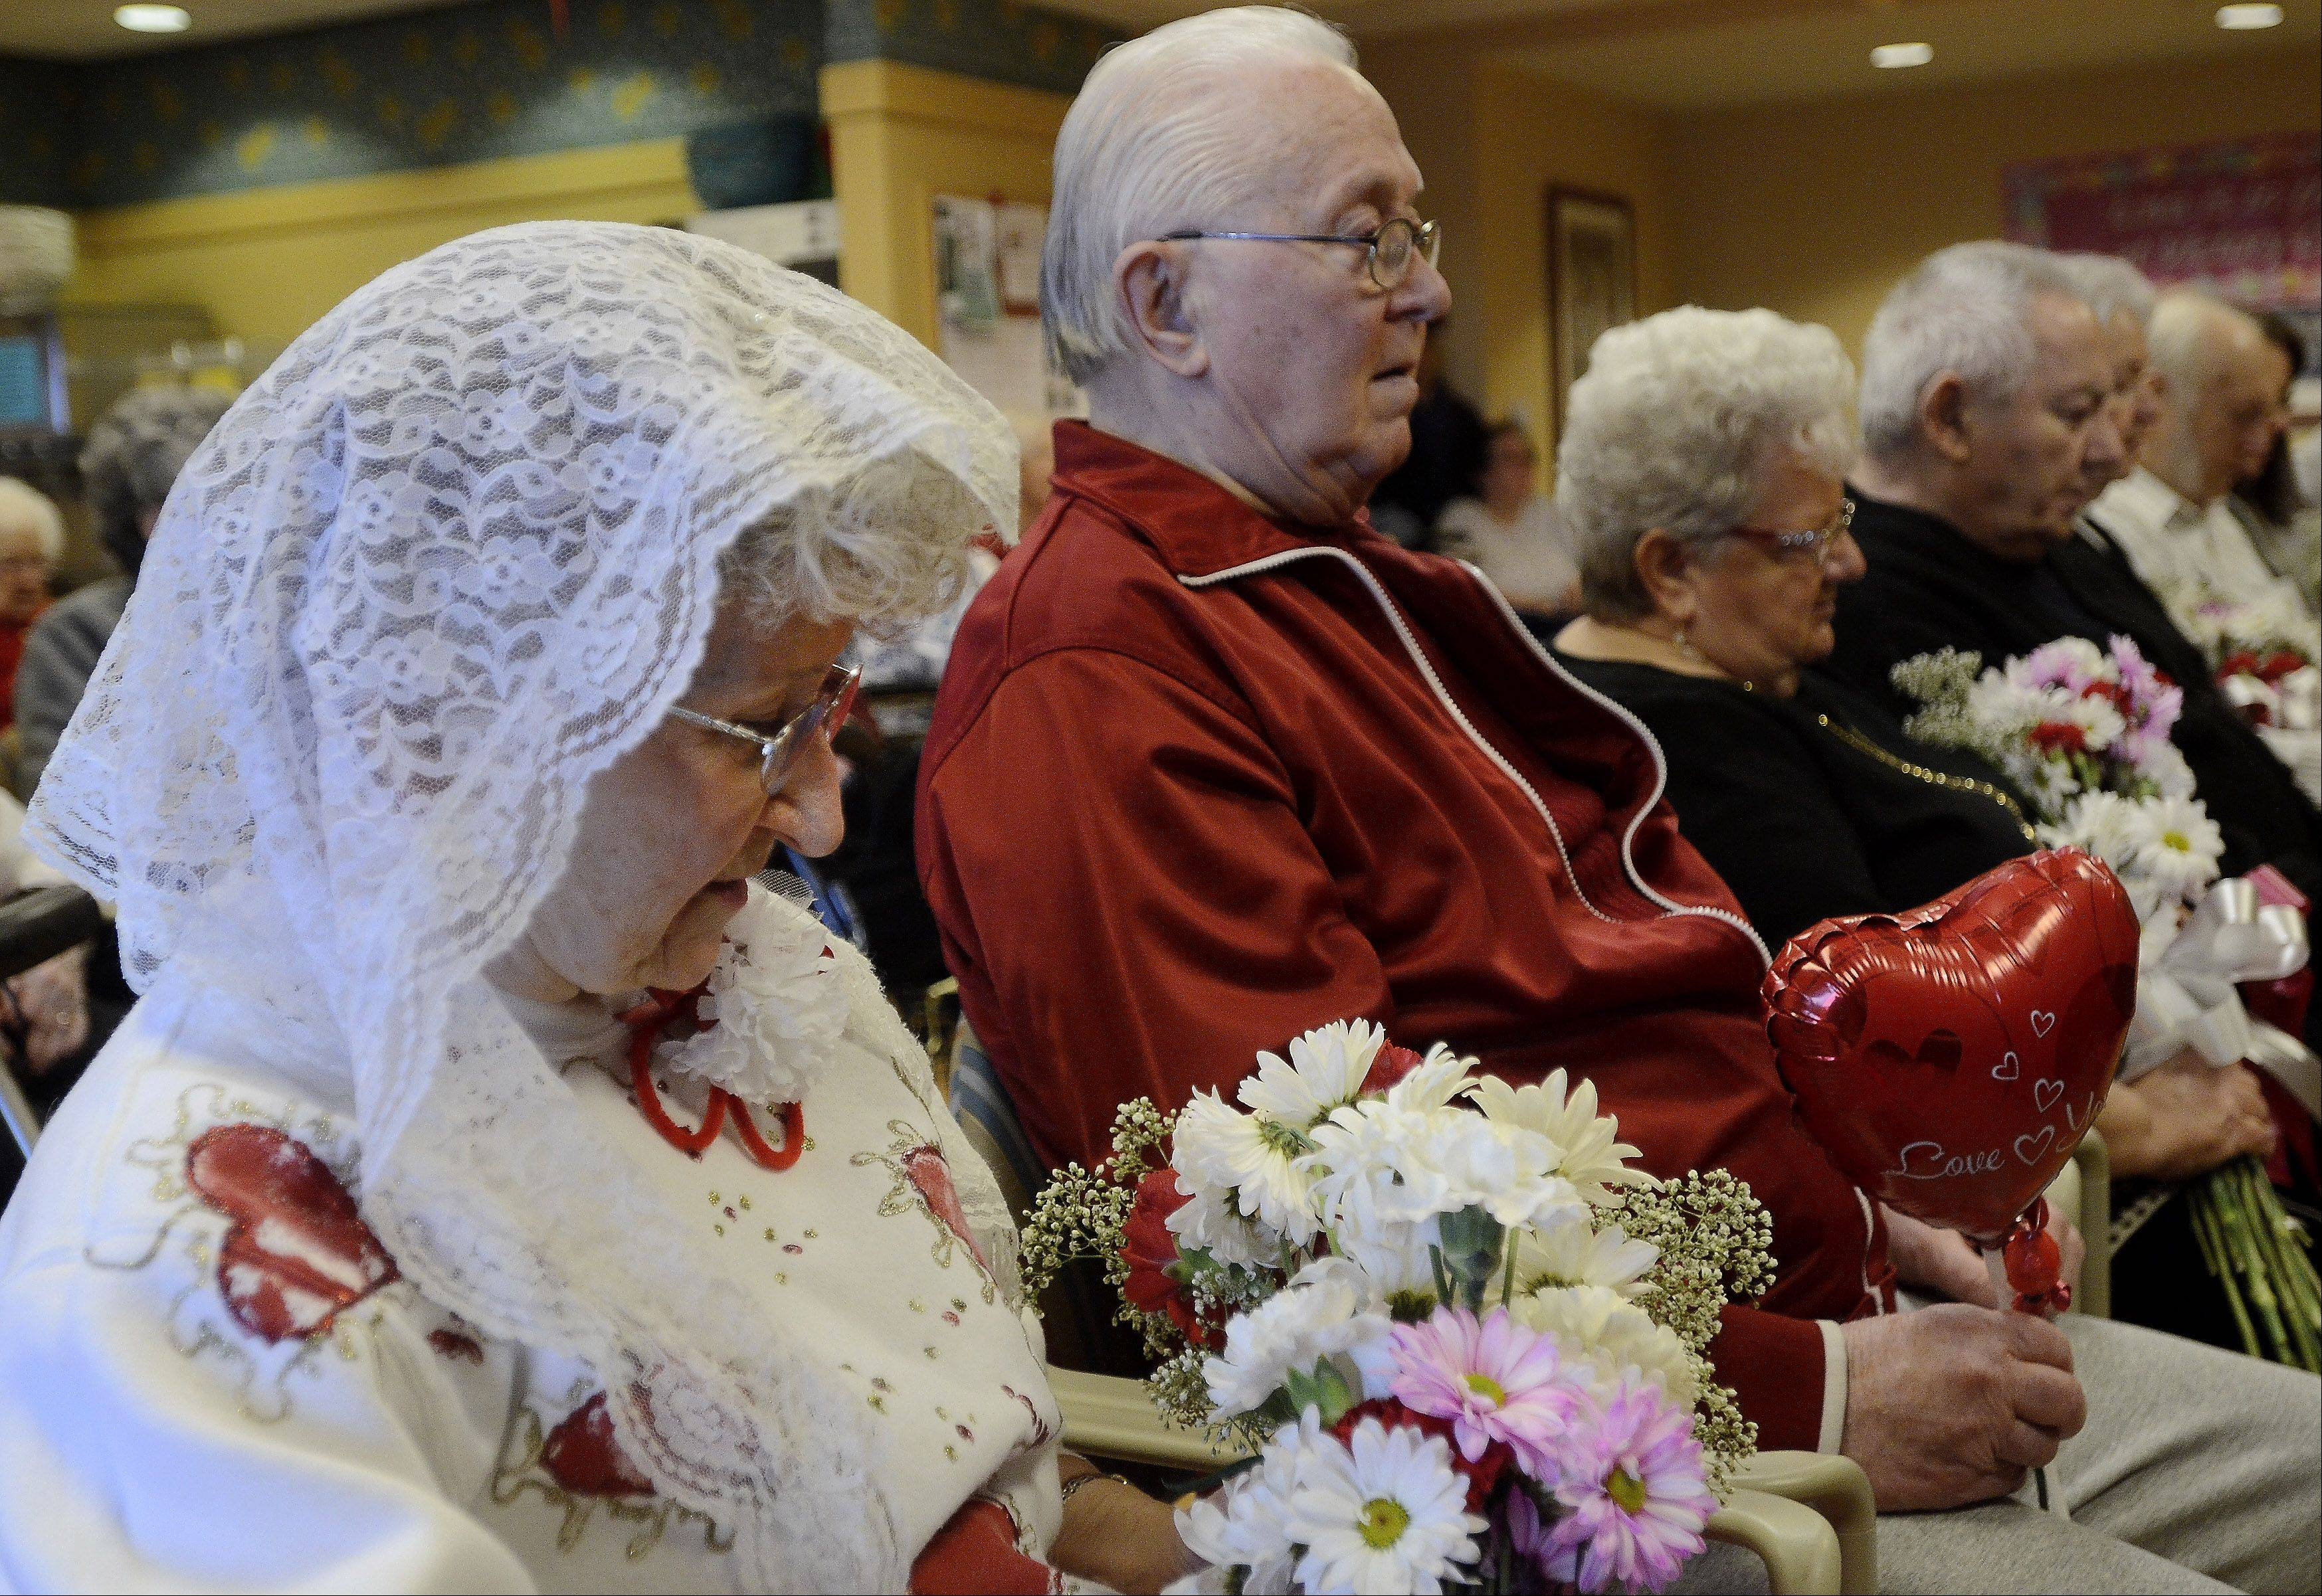 Helen and Arthur Polich renewed their wedding vows Thursday along with three other couples at Victory Centre of Bartlett.